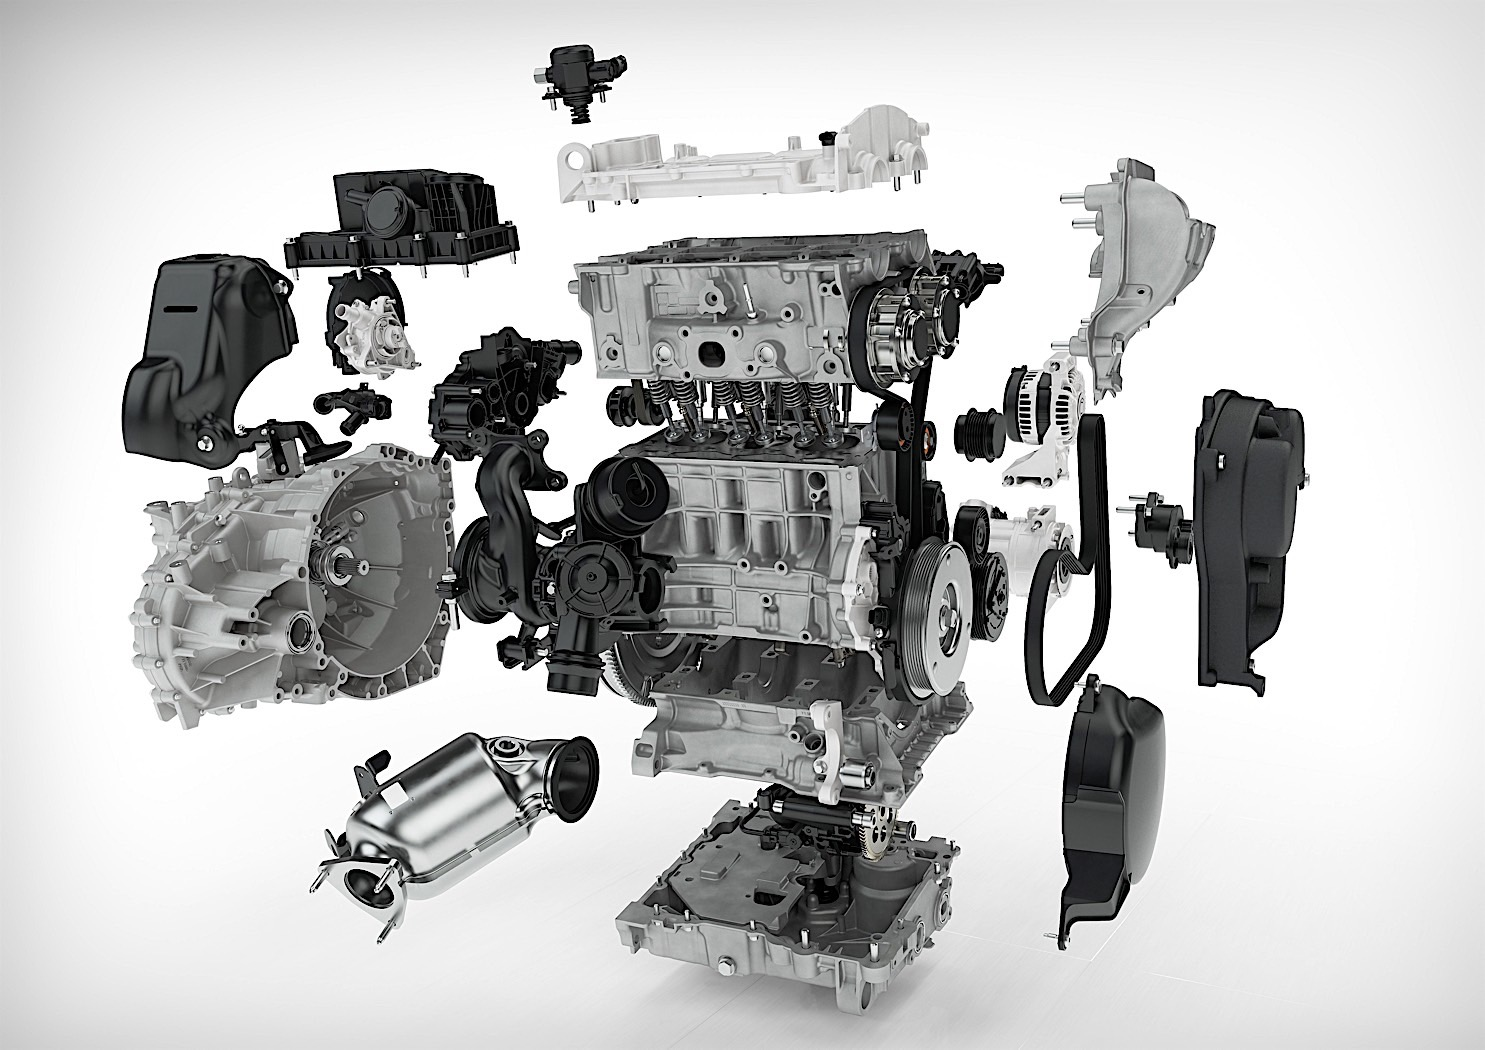 Volvo reveals new three-cylinder petrol engine for XC40